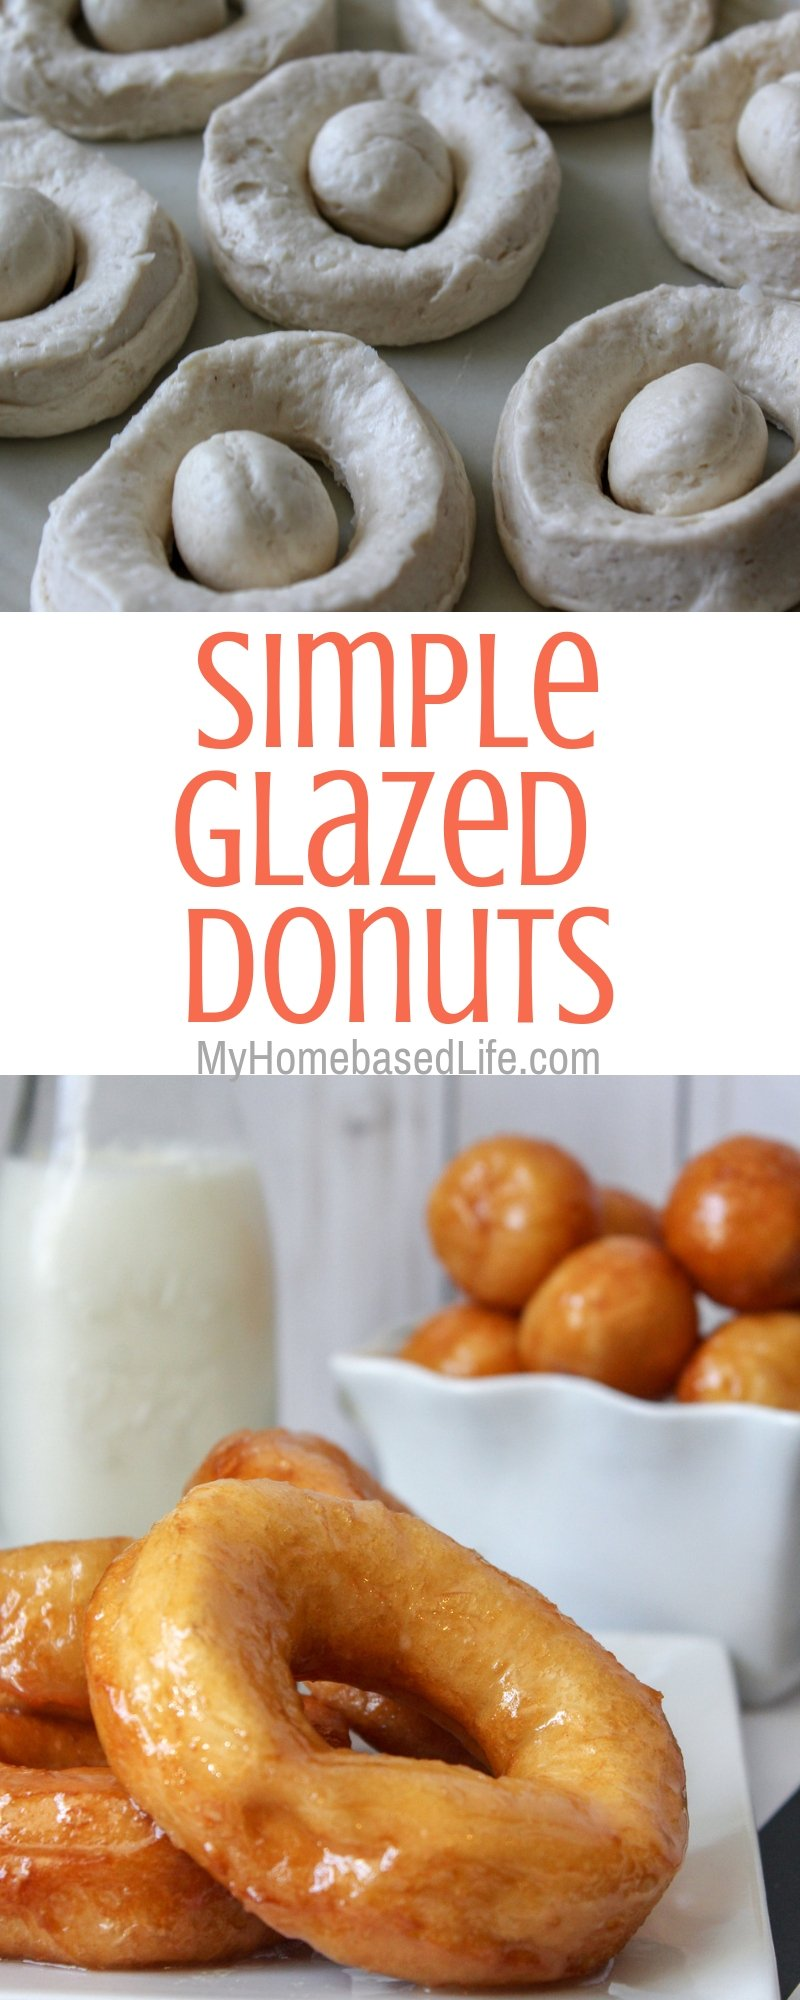 Change up your breakfast routine and make these simple glazed donuts instead. The kids love them and you will get serious